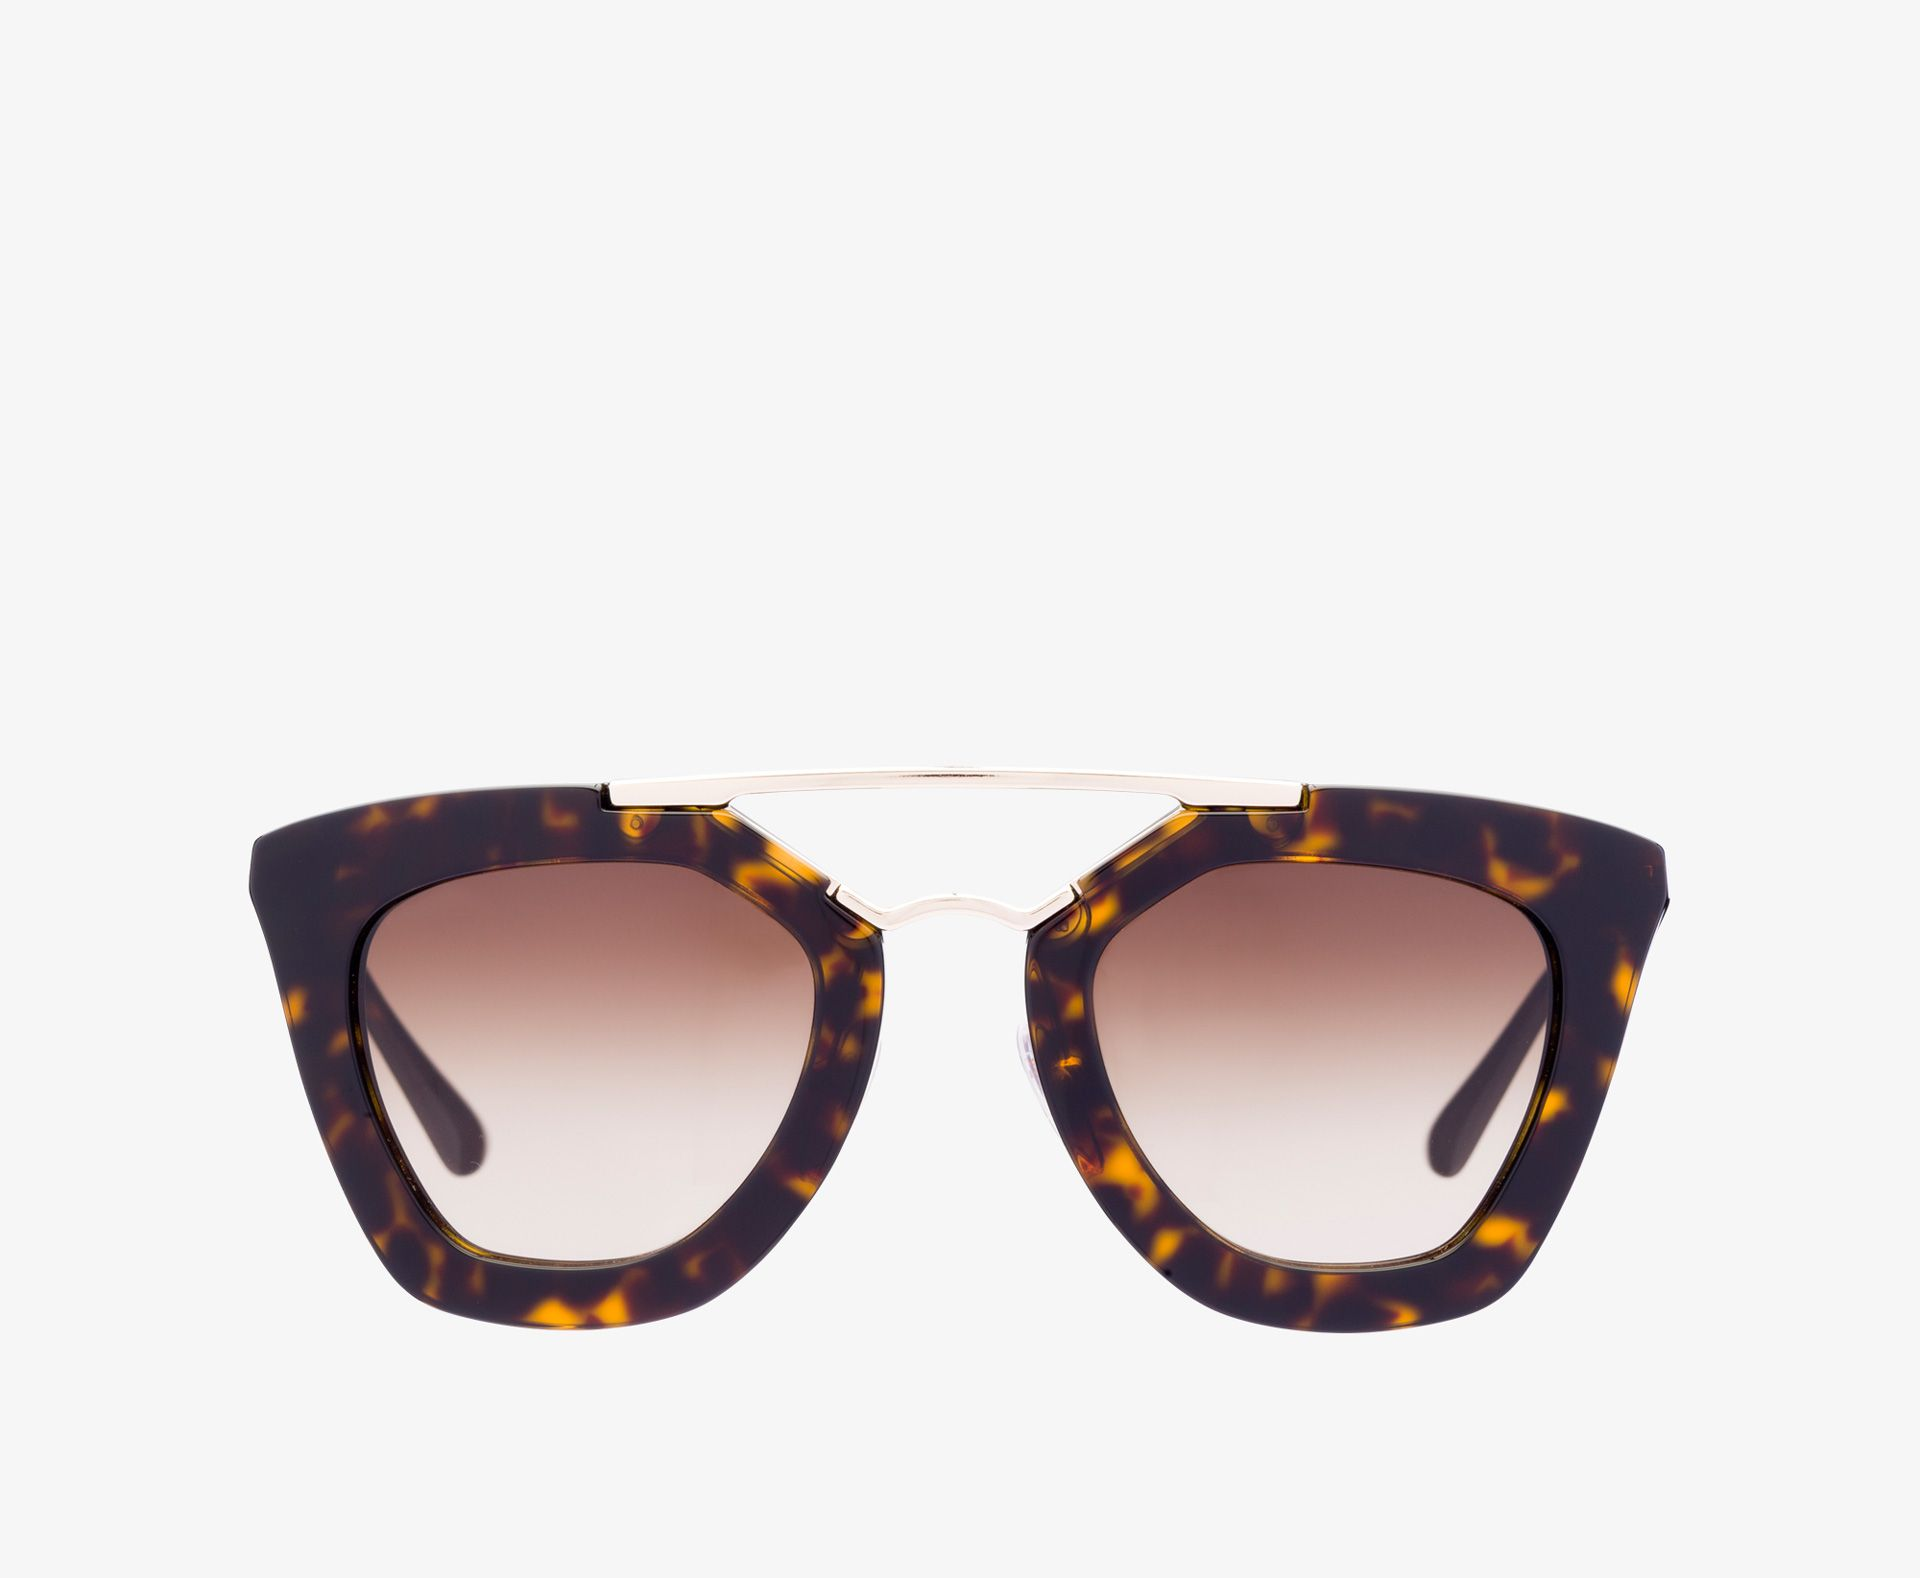 Solaires Eyewear CollectionFashion Prada Lunette Lunette Prada Eyewear CollectionFashion Prada Solaires Solaires hQCdtsxr